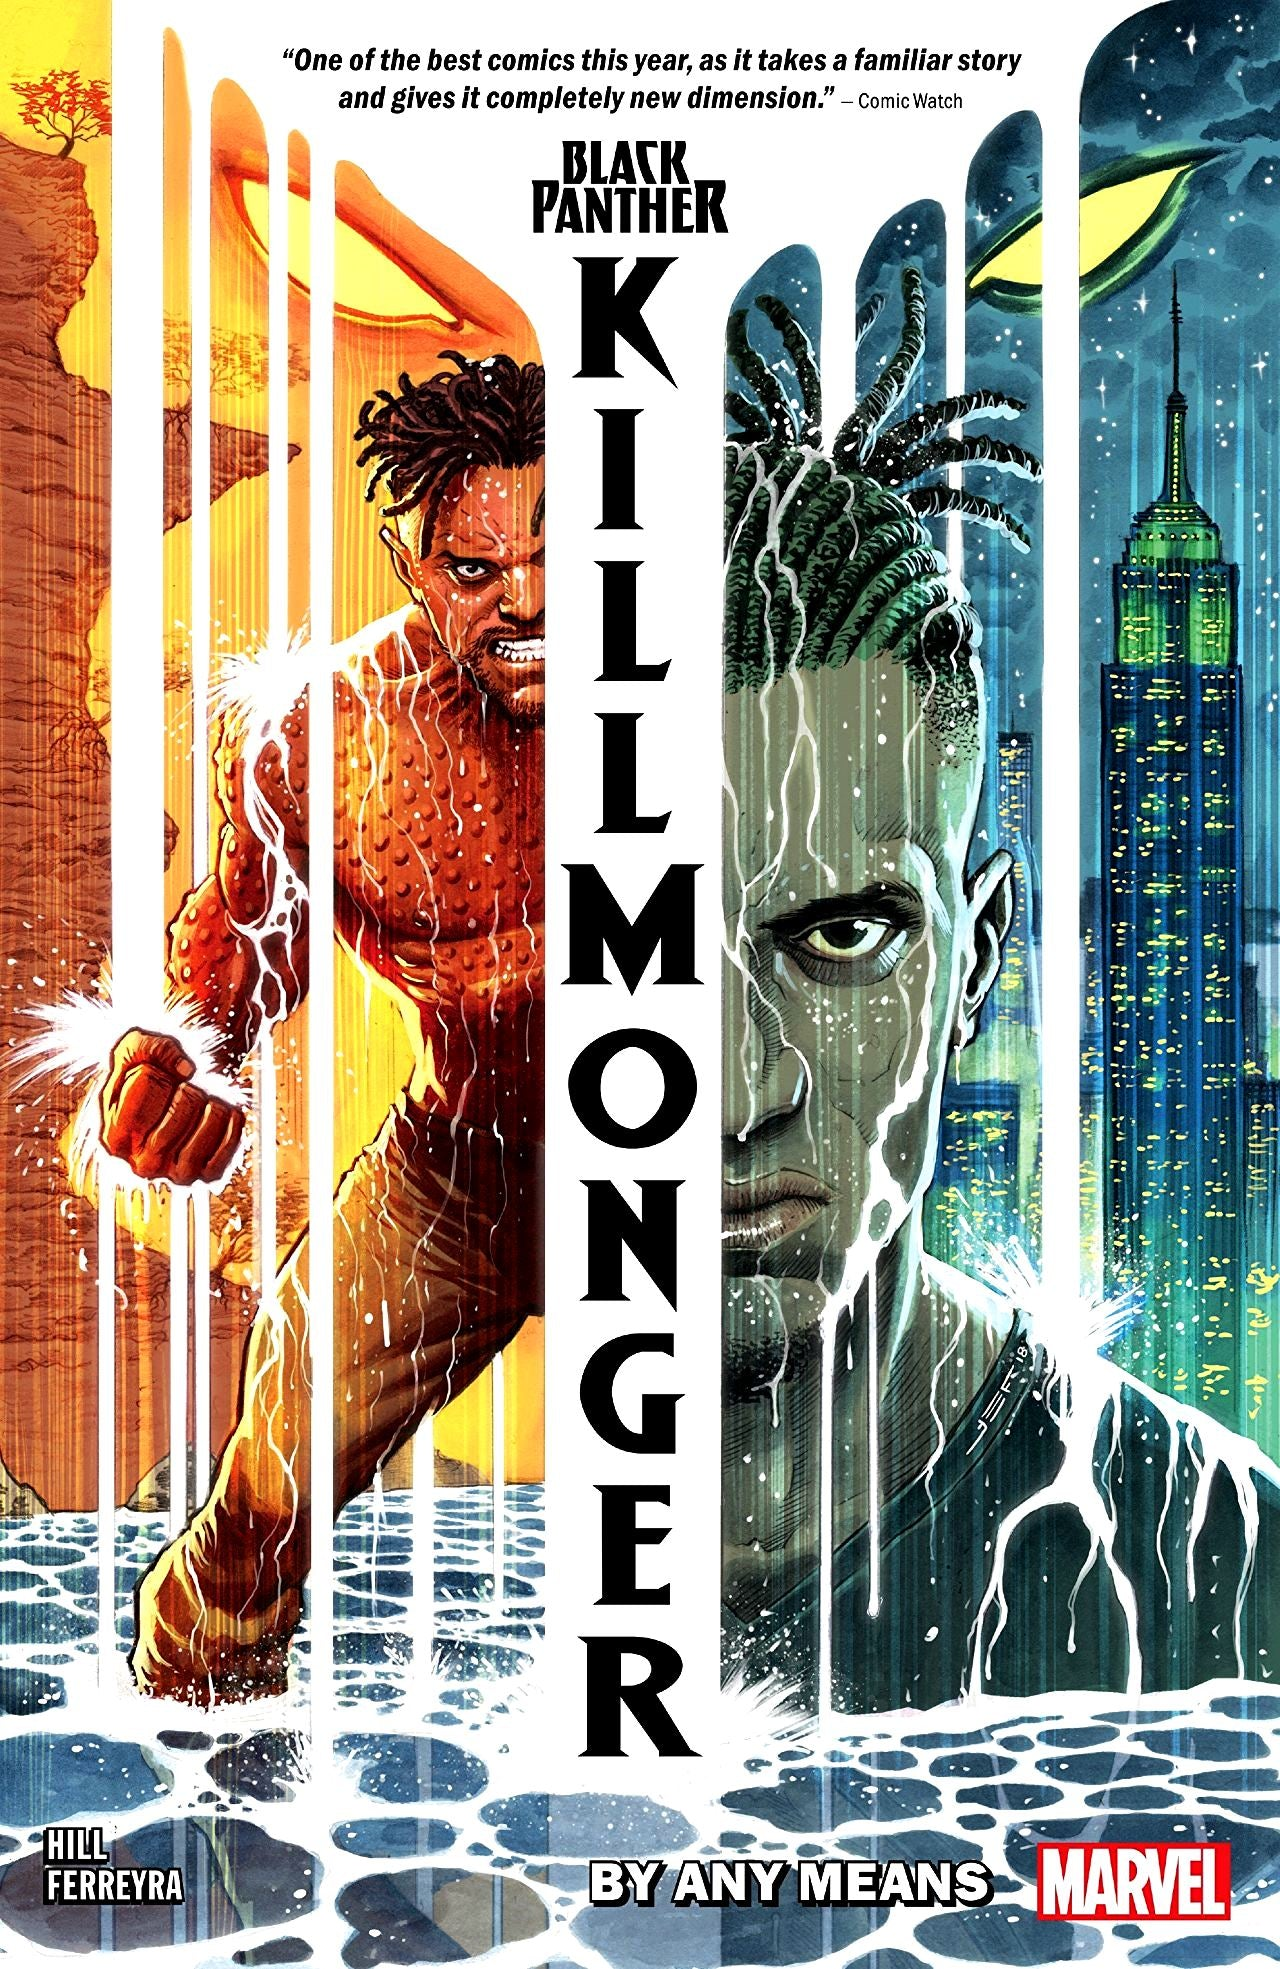 Black Panther - Killmonger (2018): By Any Means